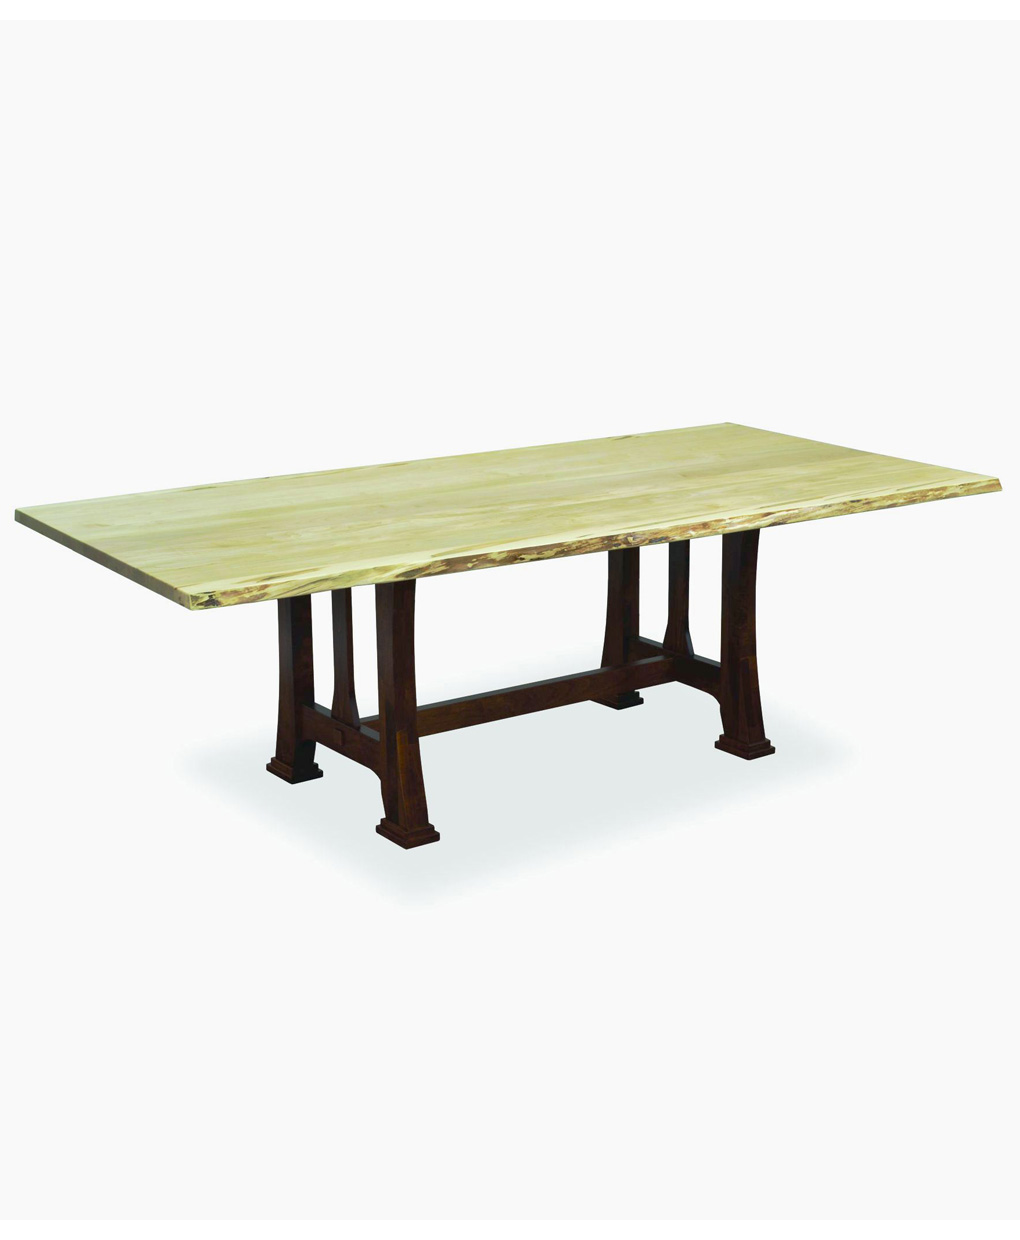 Beautiful Custer Live Edge Amish Table